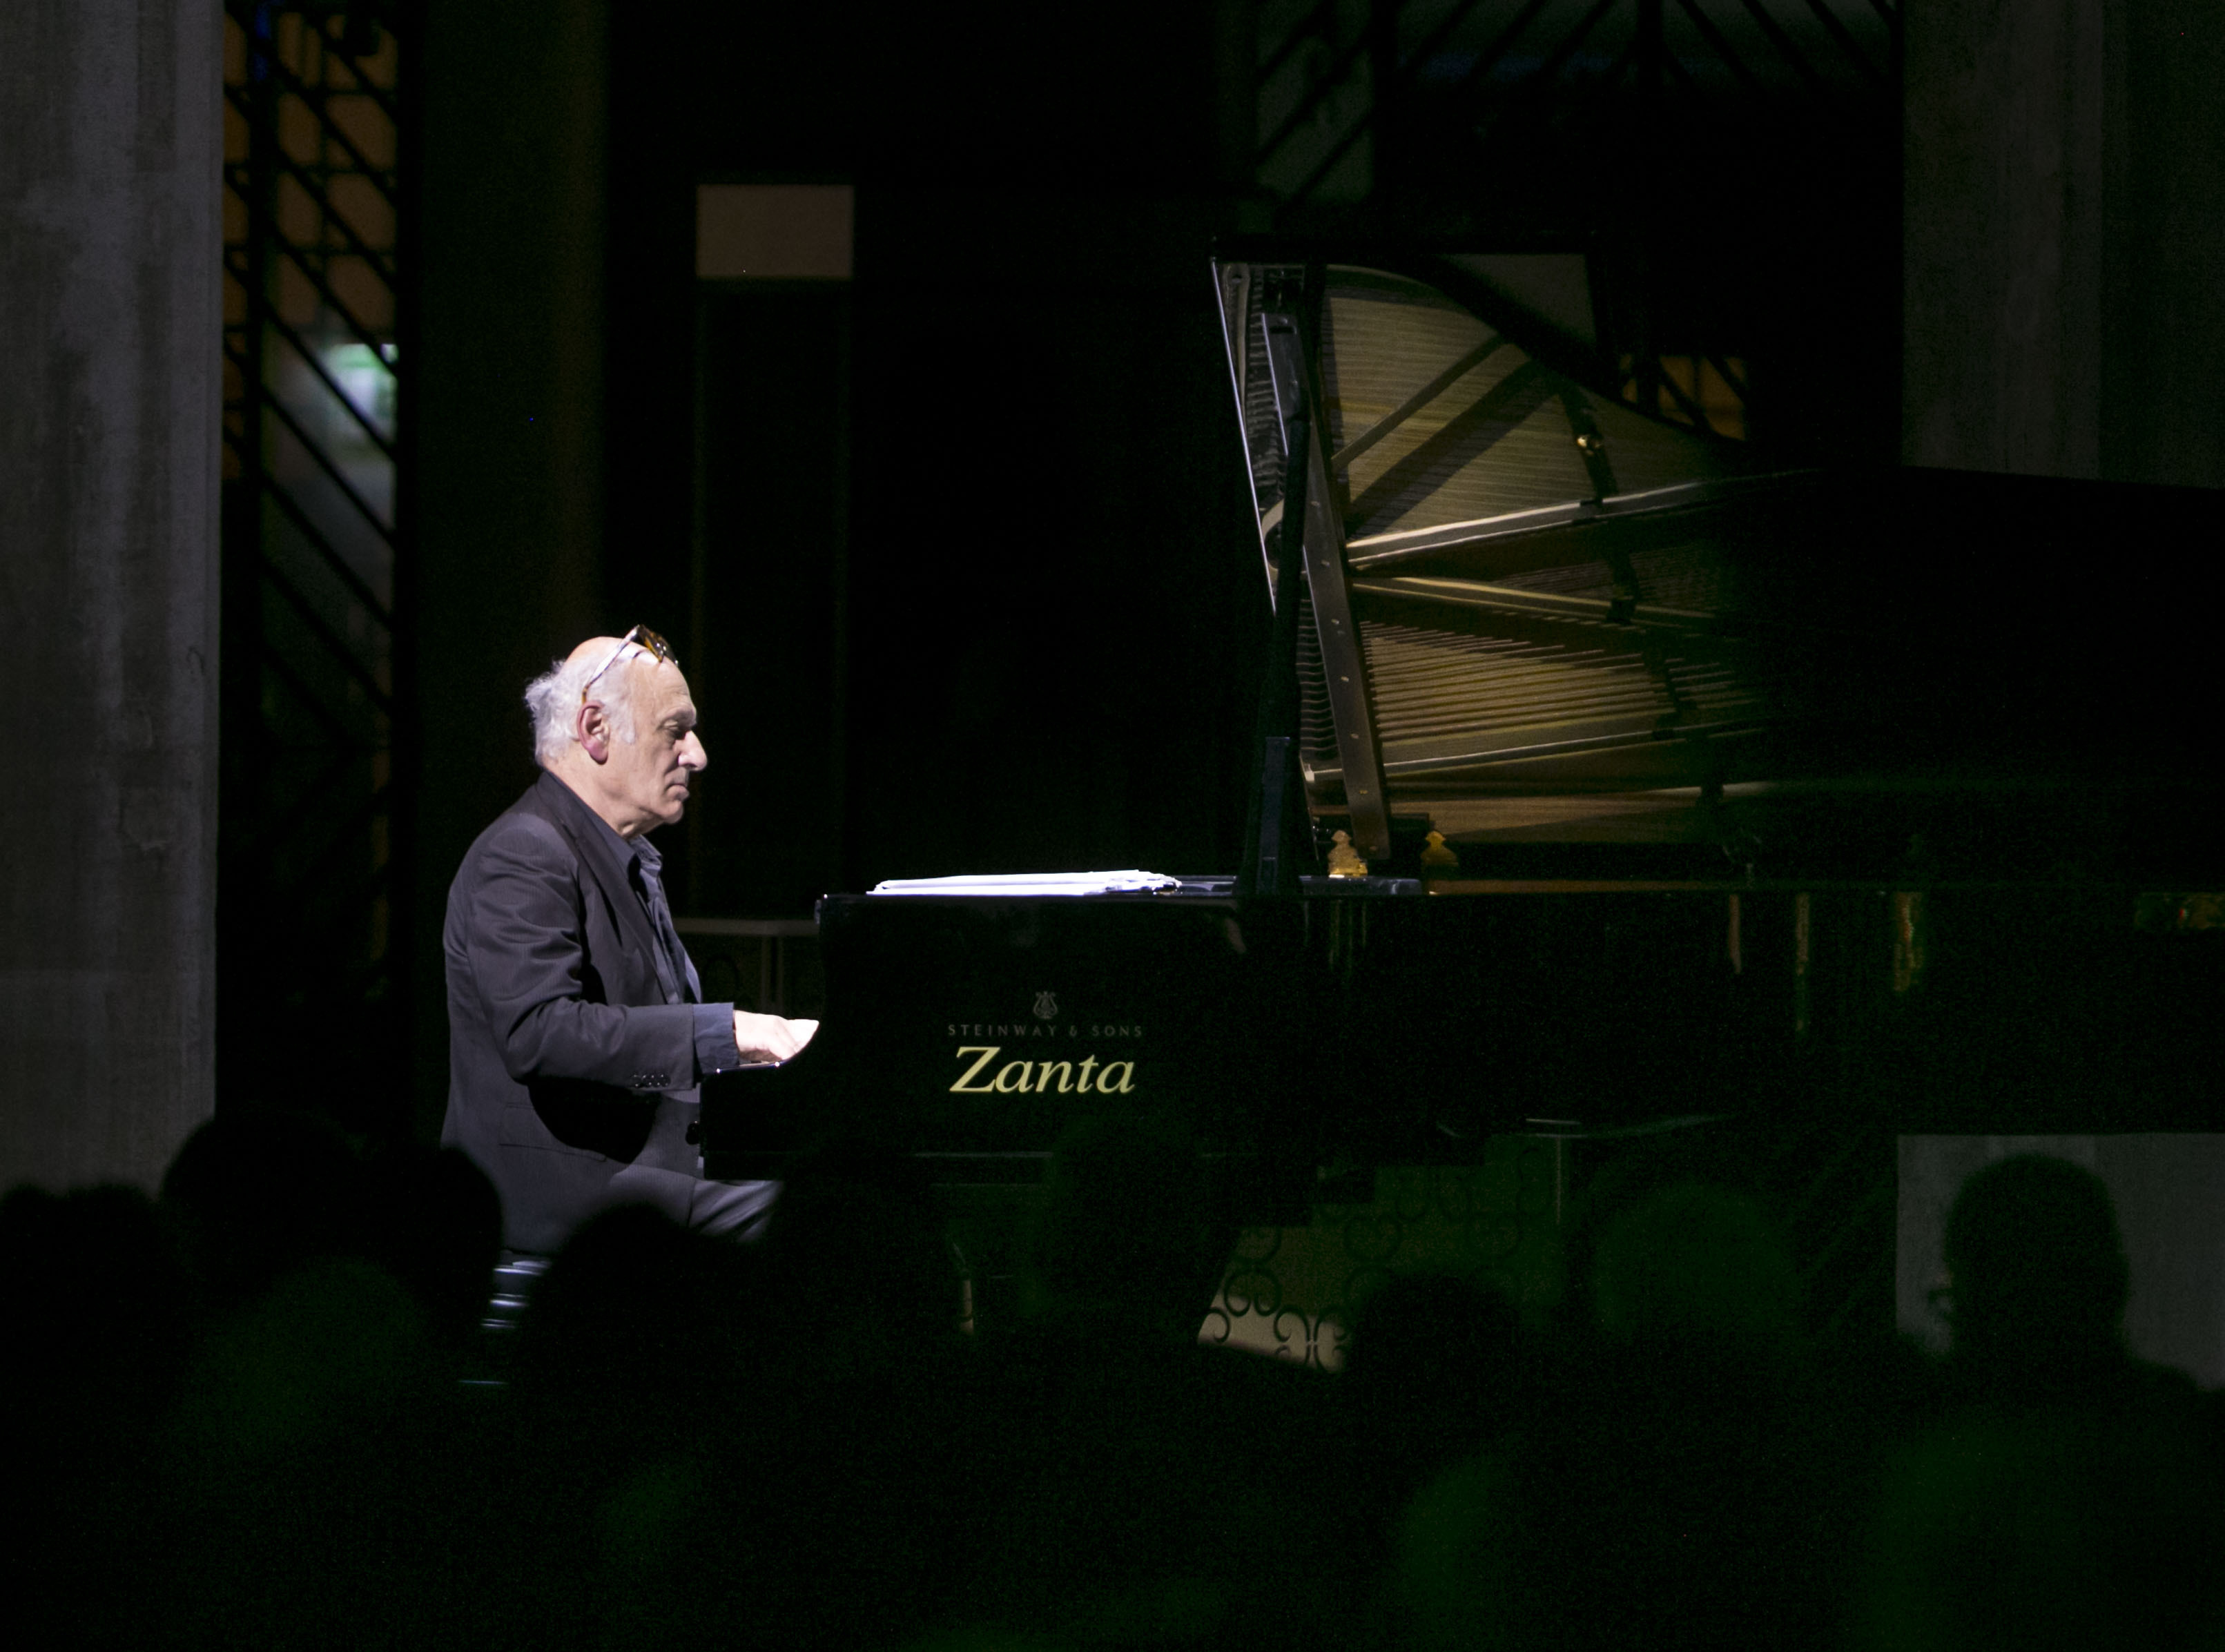 World-renowned composer and pianist Michael Nyman performed a solo concert at T Fondaco dei Tedeschi to help raise funds for those affected by the recent earthquakes in Italy. (Photo: Business Wire)